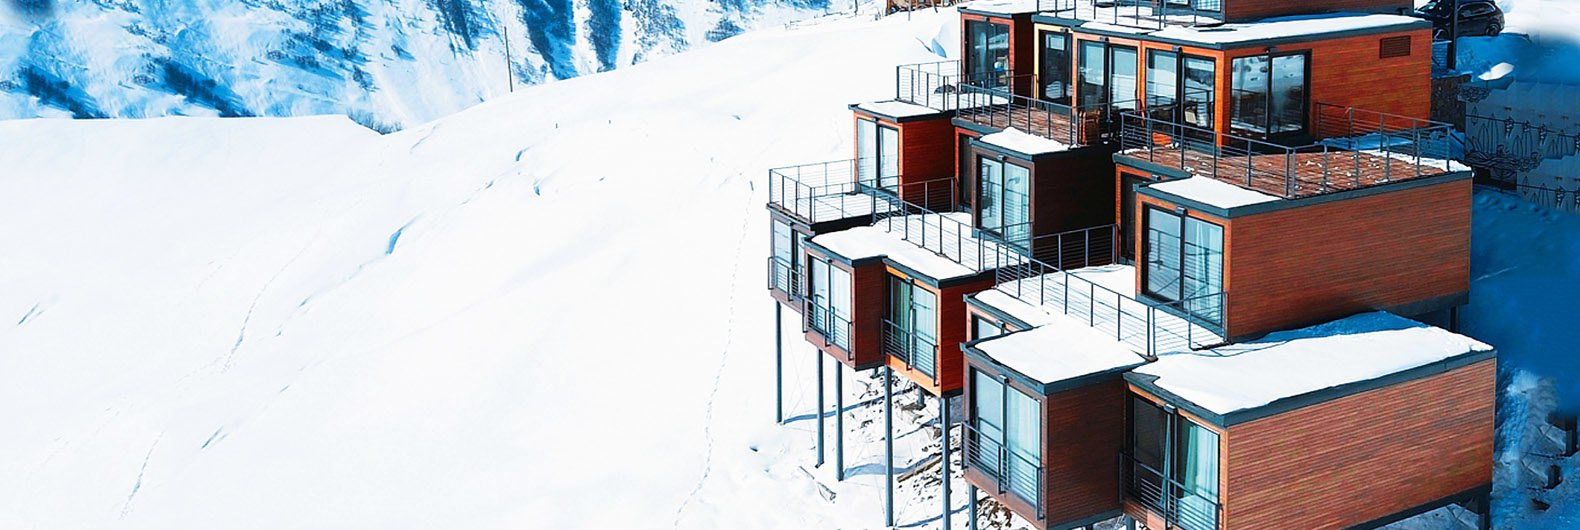 This gorgeous shipping container ski resort is tucked into a